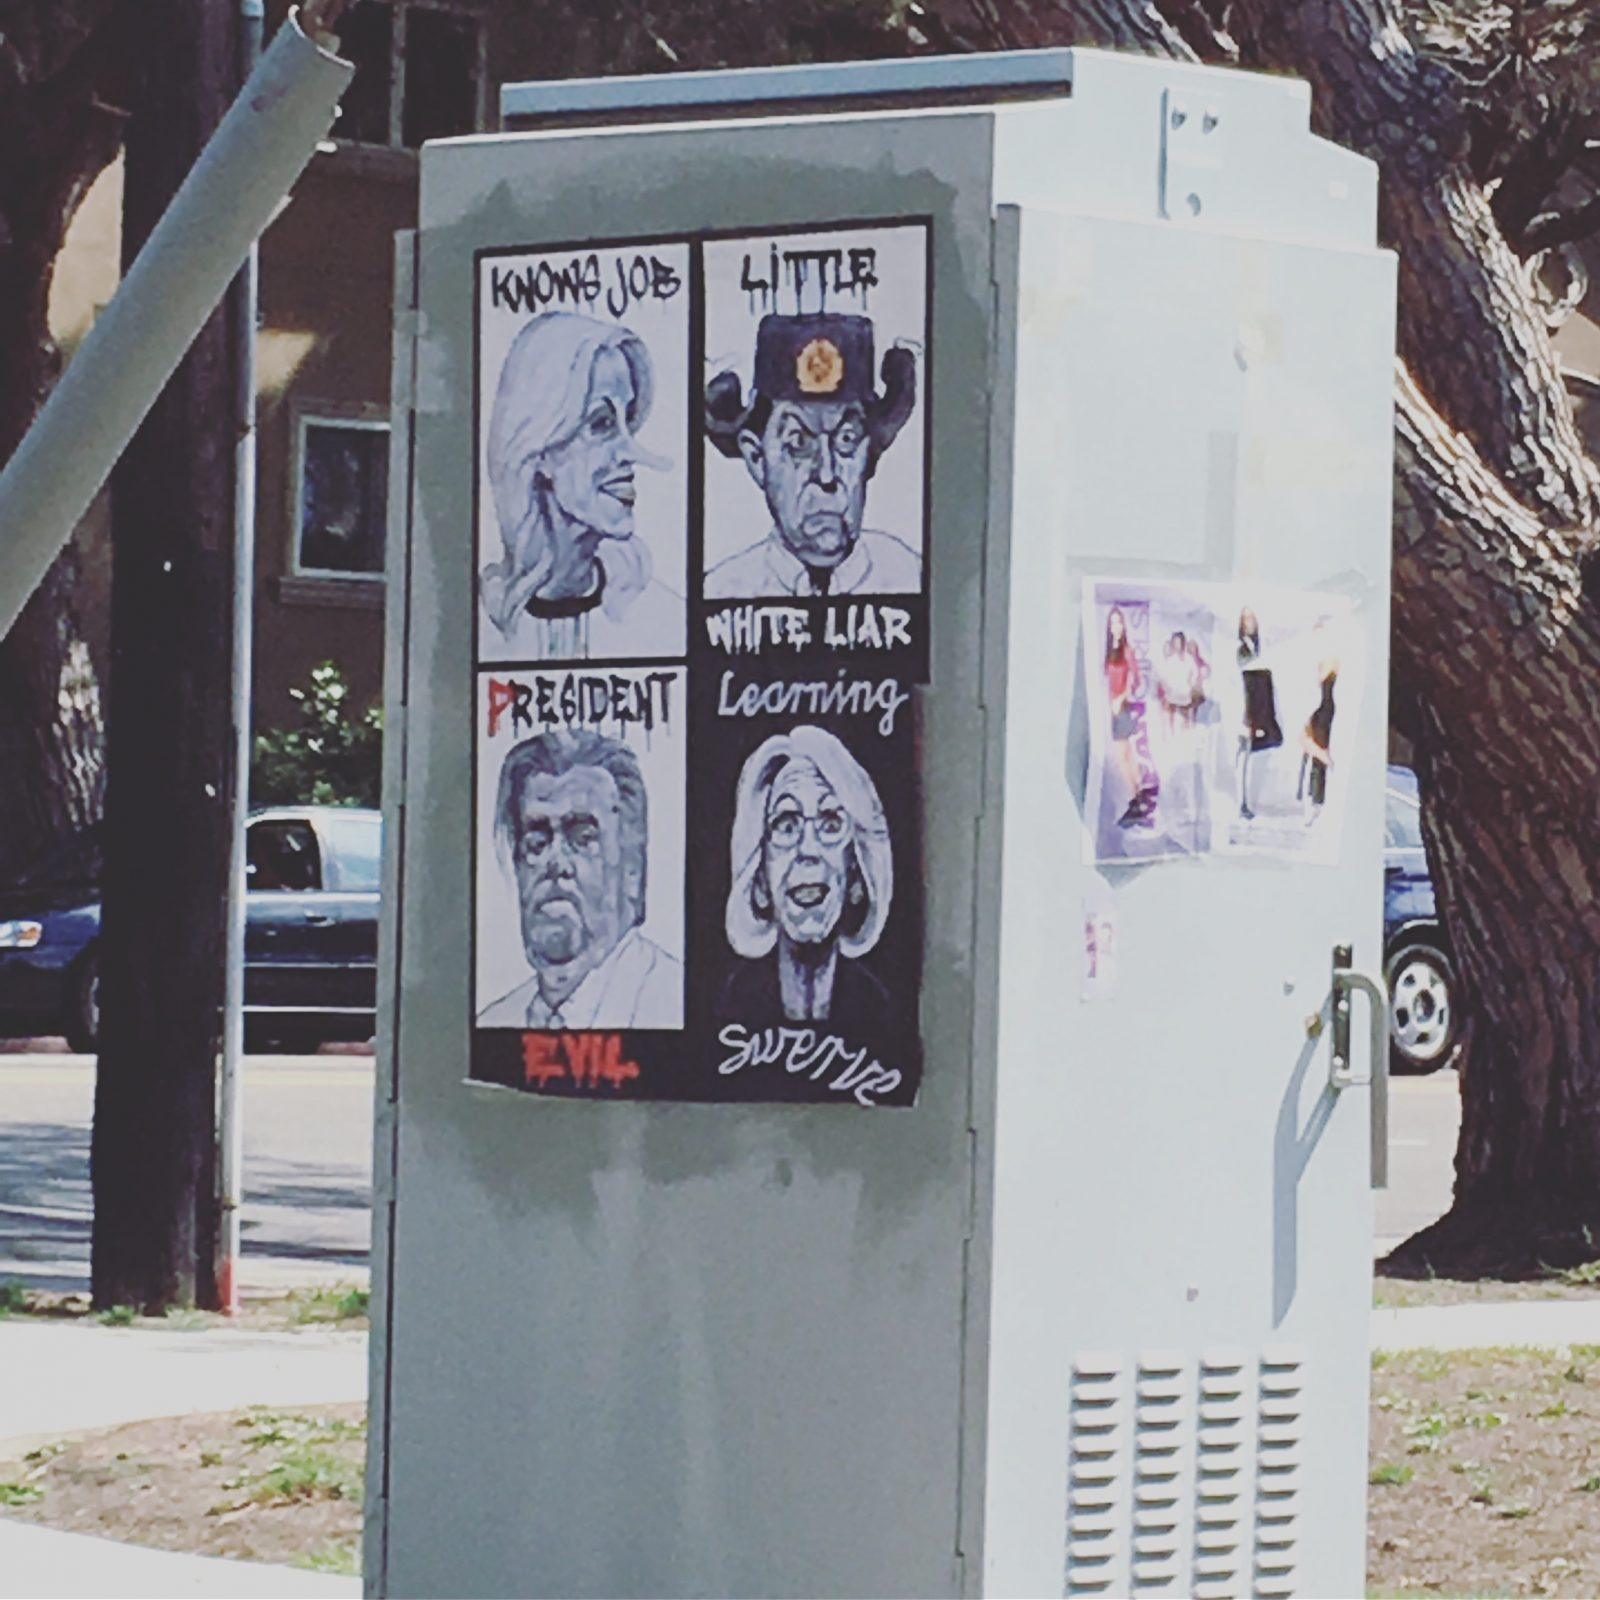 Street art in Mar Vista Los Angeles